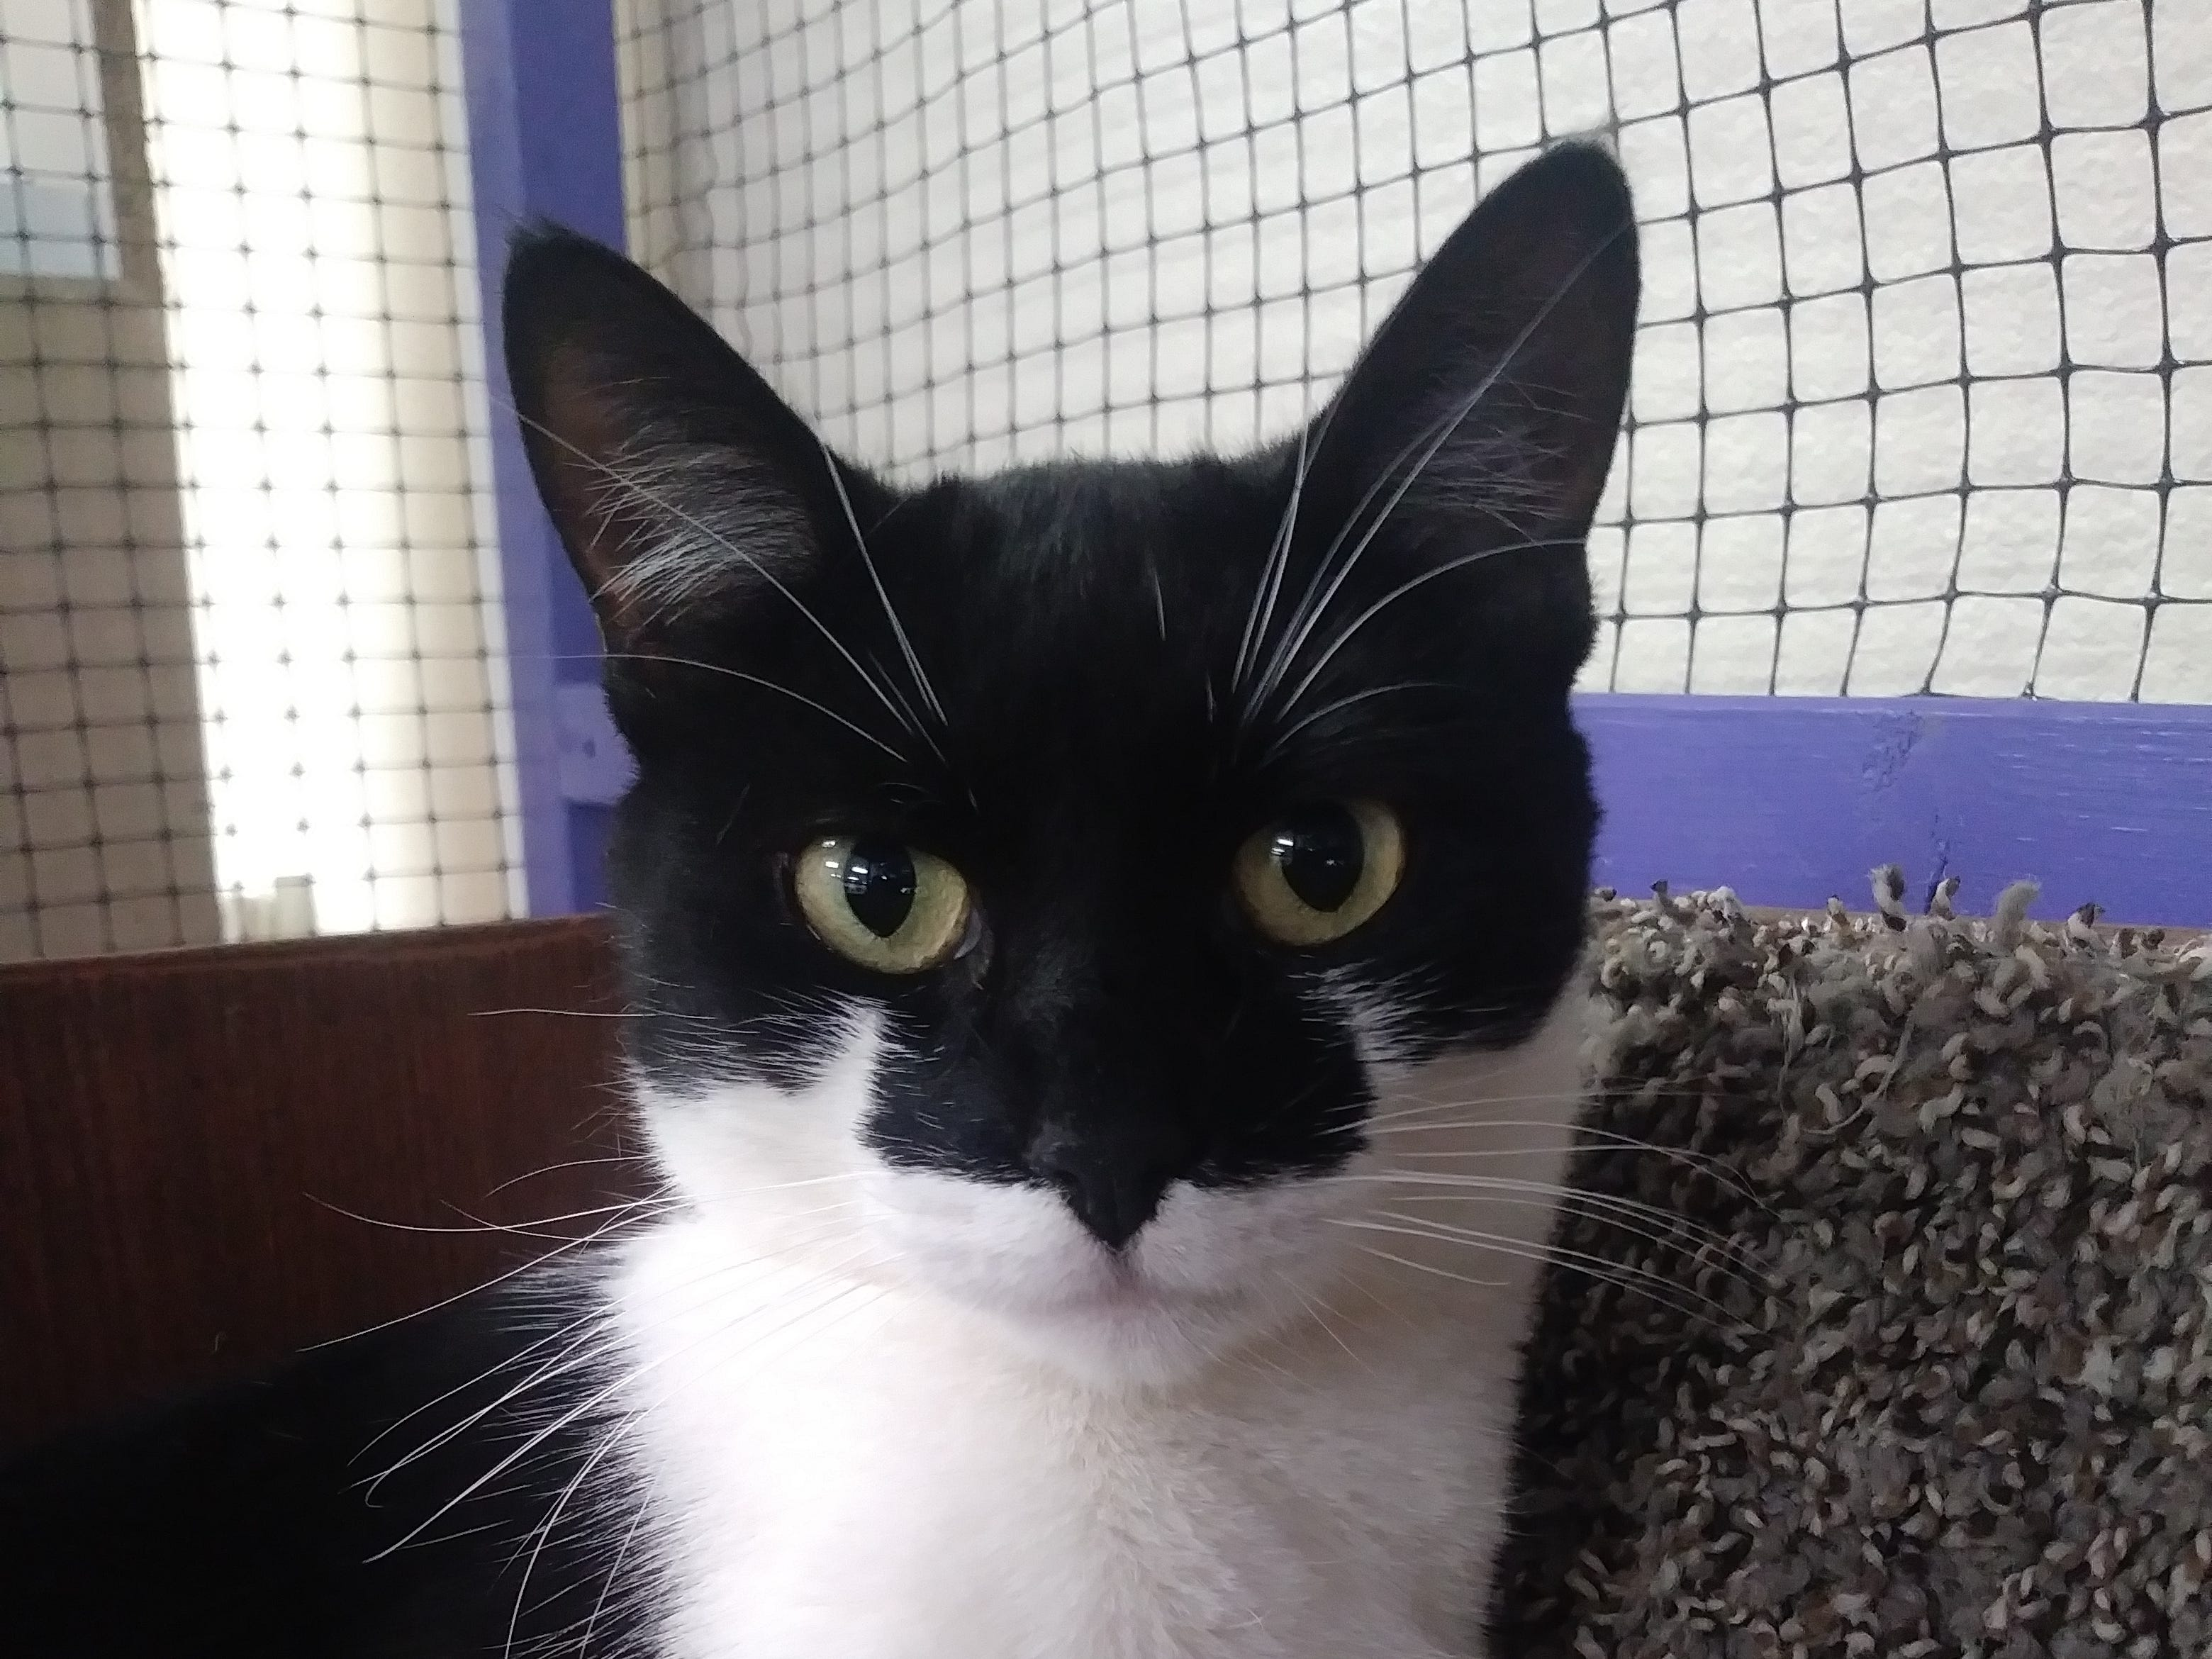 Missy is a beautiful young mother of four kittens. She enjoys going for rides in her stroller. She and her daughter Domino are available for adoption. Email Spay Neuter and Protect at Snap.spayneuterandprotect@gmail.com. Call 209-6966.